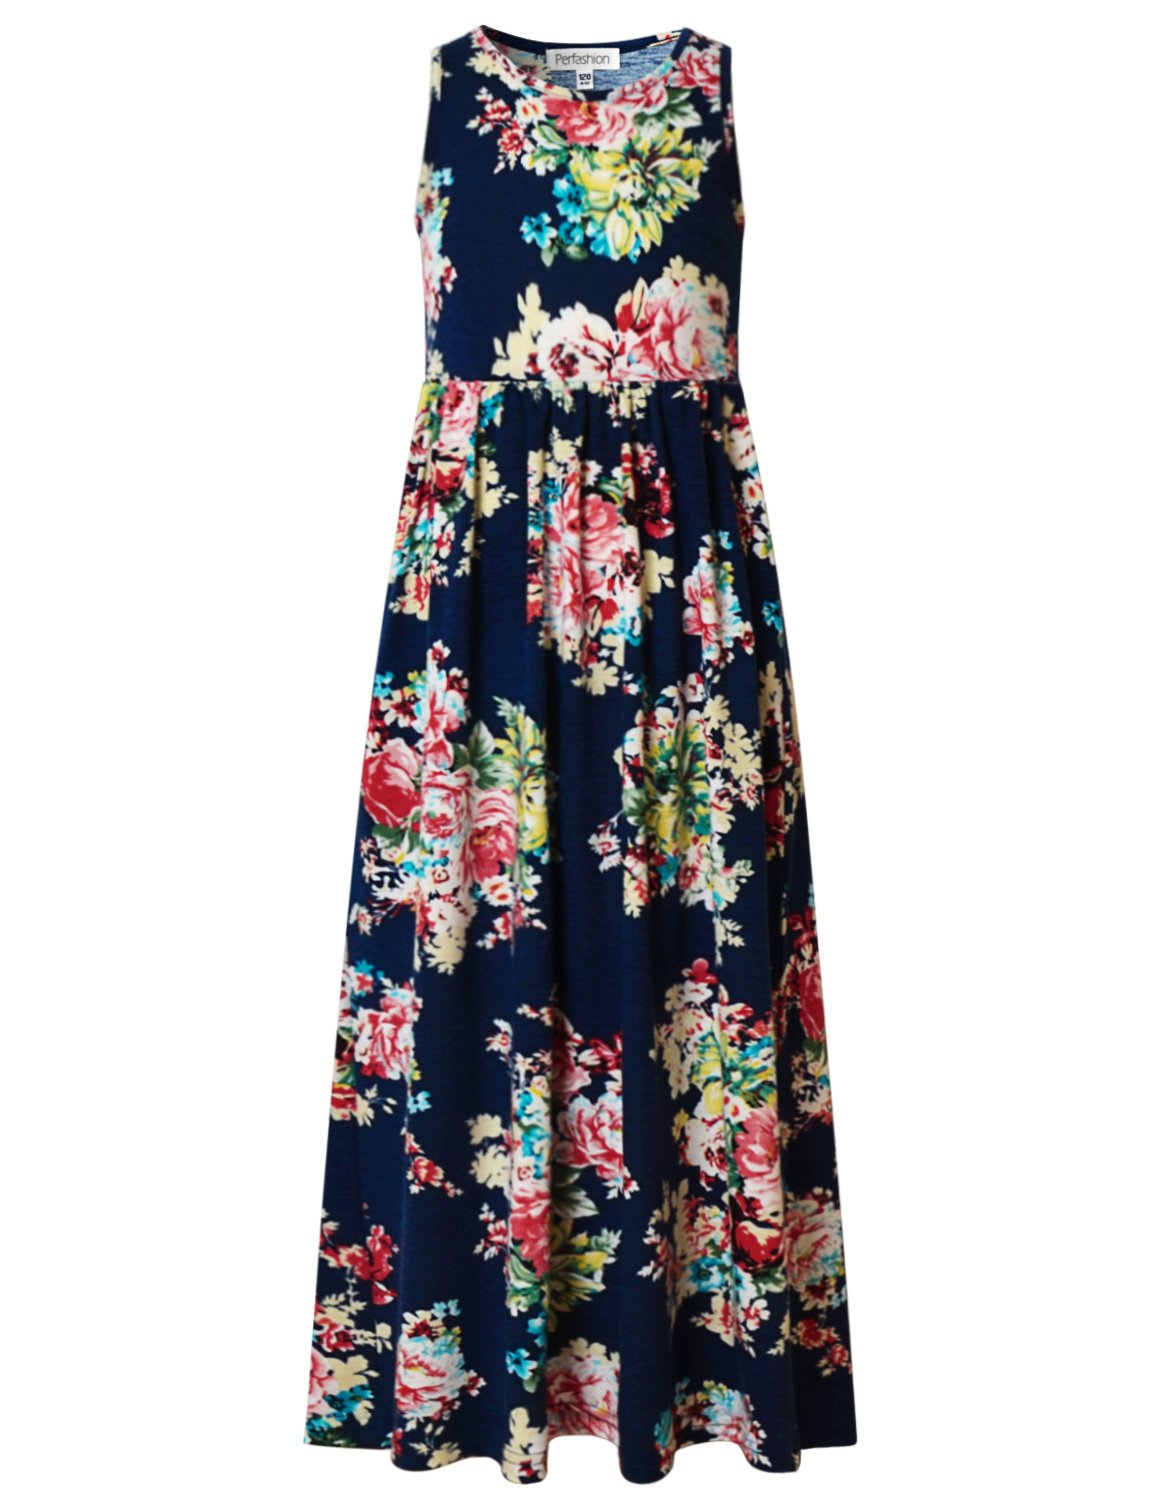 Perfashion Girls Empire Waist Floral Print Boat NeckSummer Maxi Dress, 6-7 Years/Height:48in, Navy Blue Floral